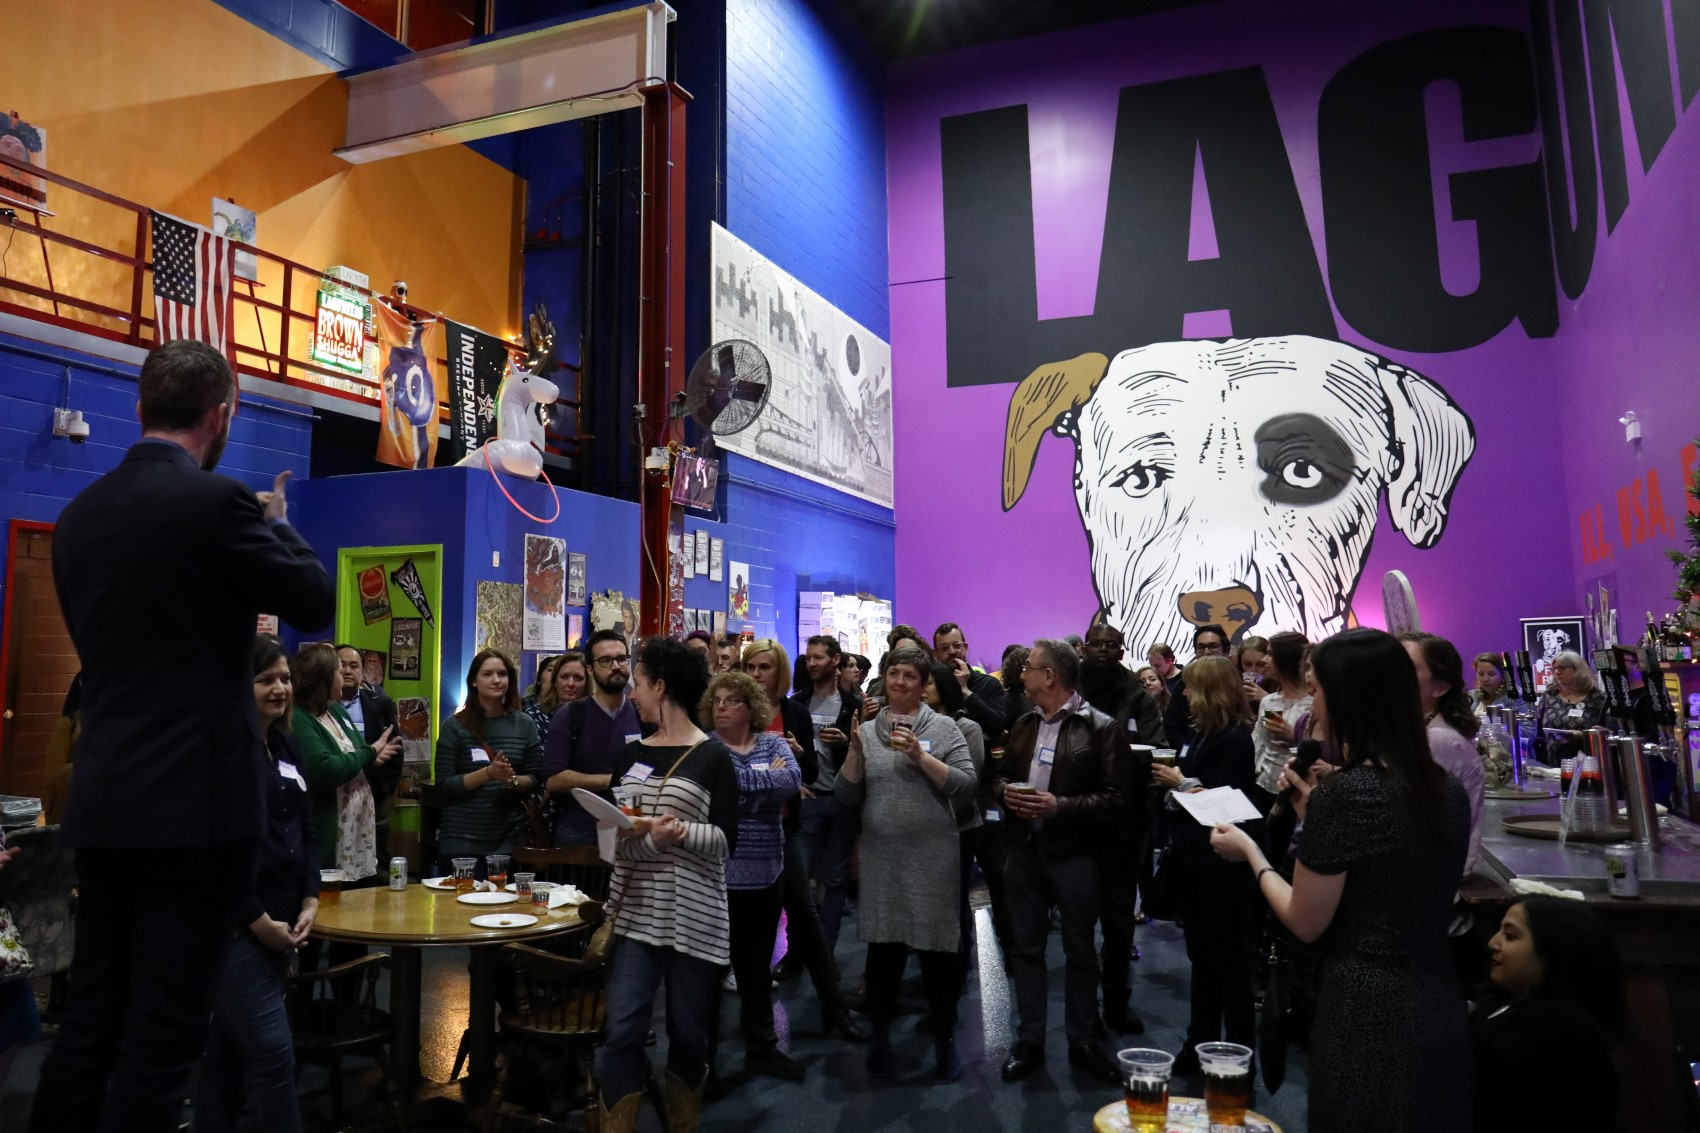 Image from 2019's Fundraiser at Lagunita's Basement. A crowd of attendees from CCAC's 2019 Fundraiser gather, drinks in hand, for remarks led by CCAC Founder Christena Gunther. In the foreground, there is a sign language interpreter elevated to Christena's left.